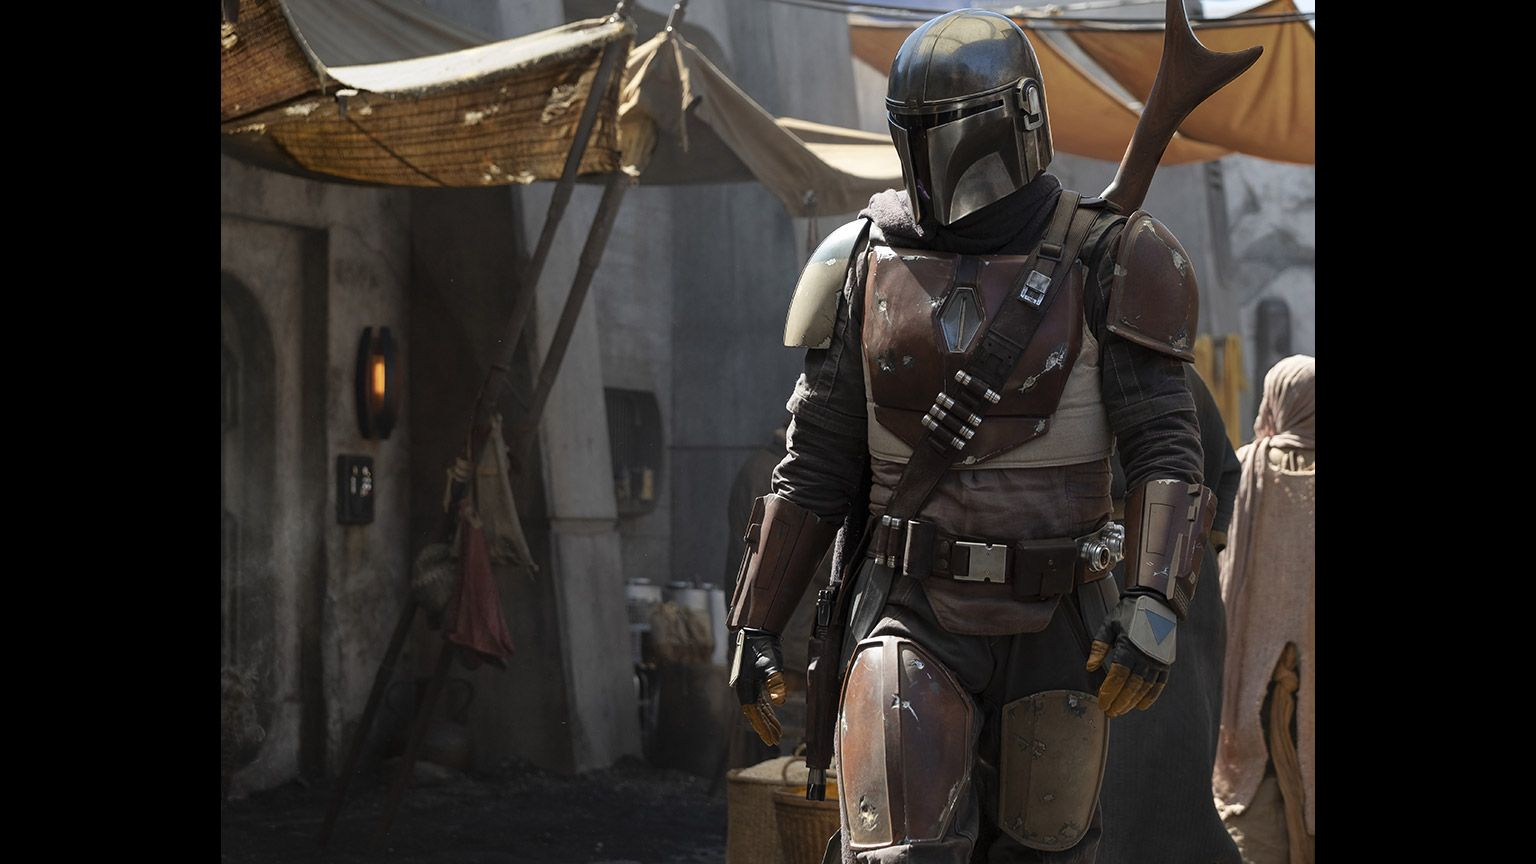 The Mandalorian marvel directores - serie Star Wars Jon Favreau directores Marvel The Mandalorian